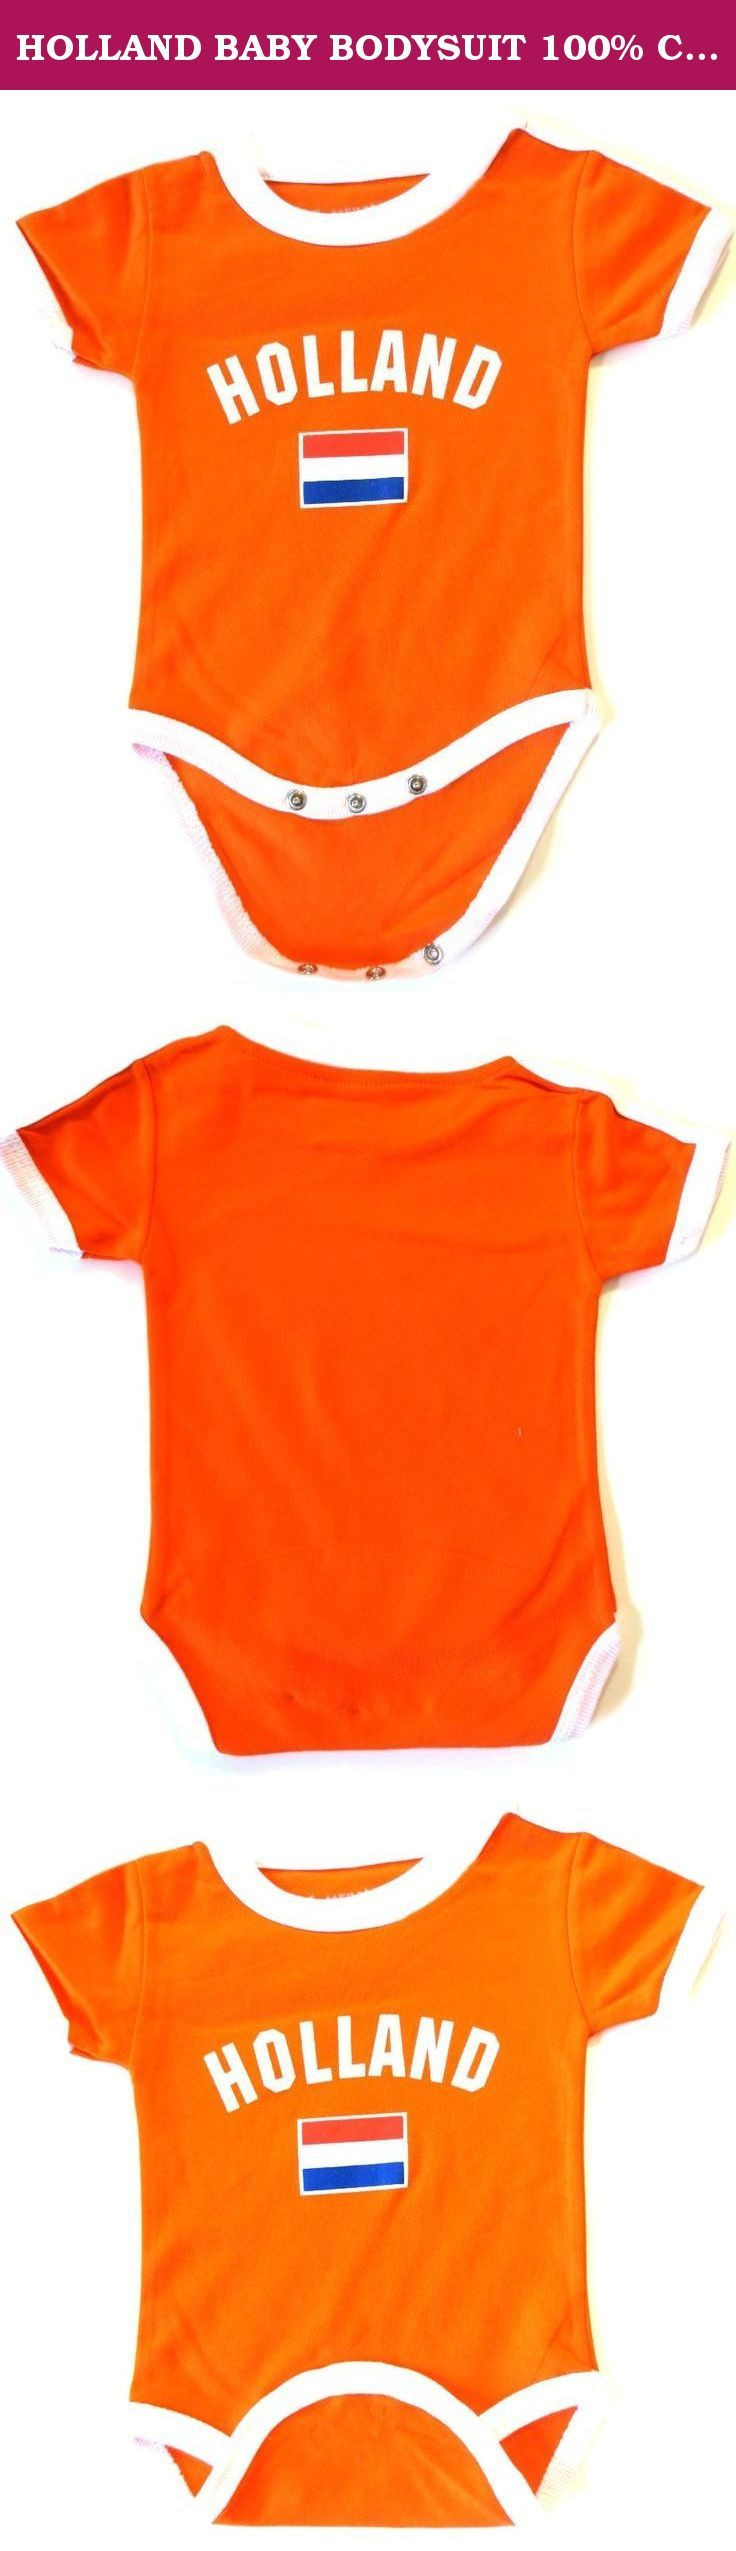 """HOLLAND BABY BODYSUIT 100% COTTON.NEW.FOR 18 MONTHS,NEW. HOLLAND BABY 100% COTTON.TODDLER . EXCELLENT QUALITY. BRAND NEW FOR 18 MONTHS: 10"""" CHEST X 15"""" LENGTH HOLLAND BABY BODYSUIT 100 % COTTON ONESIES ARE SHORT SLEEVE. PRE-SHRUNK MATERIAL NAME OF THE COUNTRY AND FLAG SCREEN PRINTED 3 SNAPS UNDERNEATH FOR EASY CHANGING FAST SHIPPING VIA USPS 2-4 WORKING DAYS ANYWHERE IN USA."""